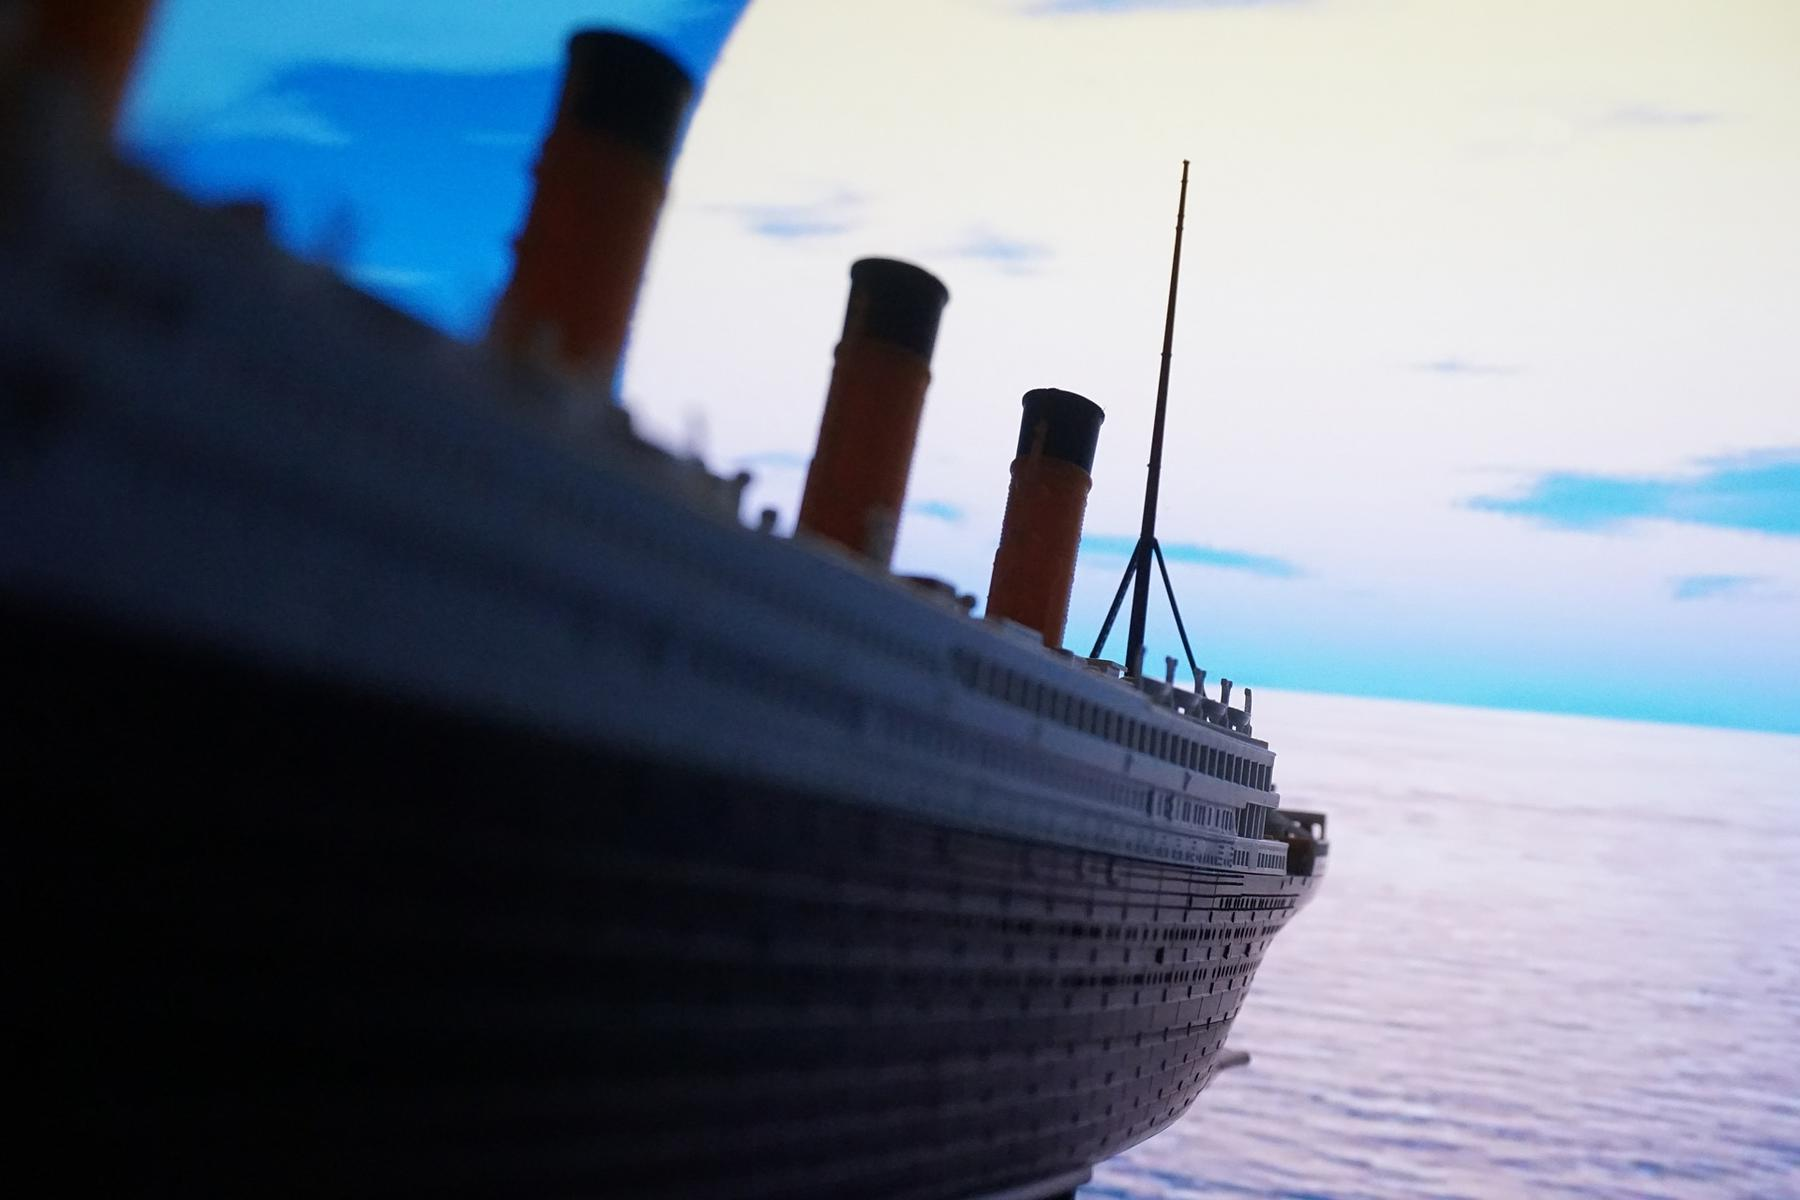 World's Largest Lego Titanic Replica, Built by Young Autistic Boy, on Display in Tennessee